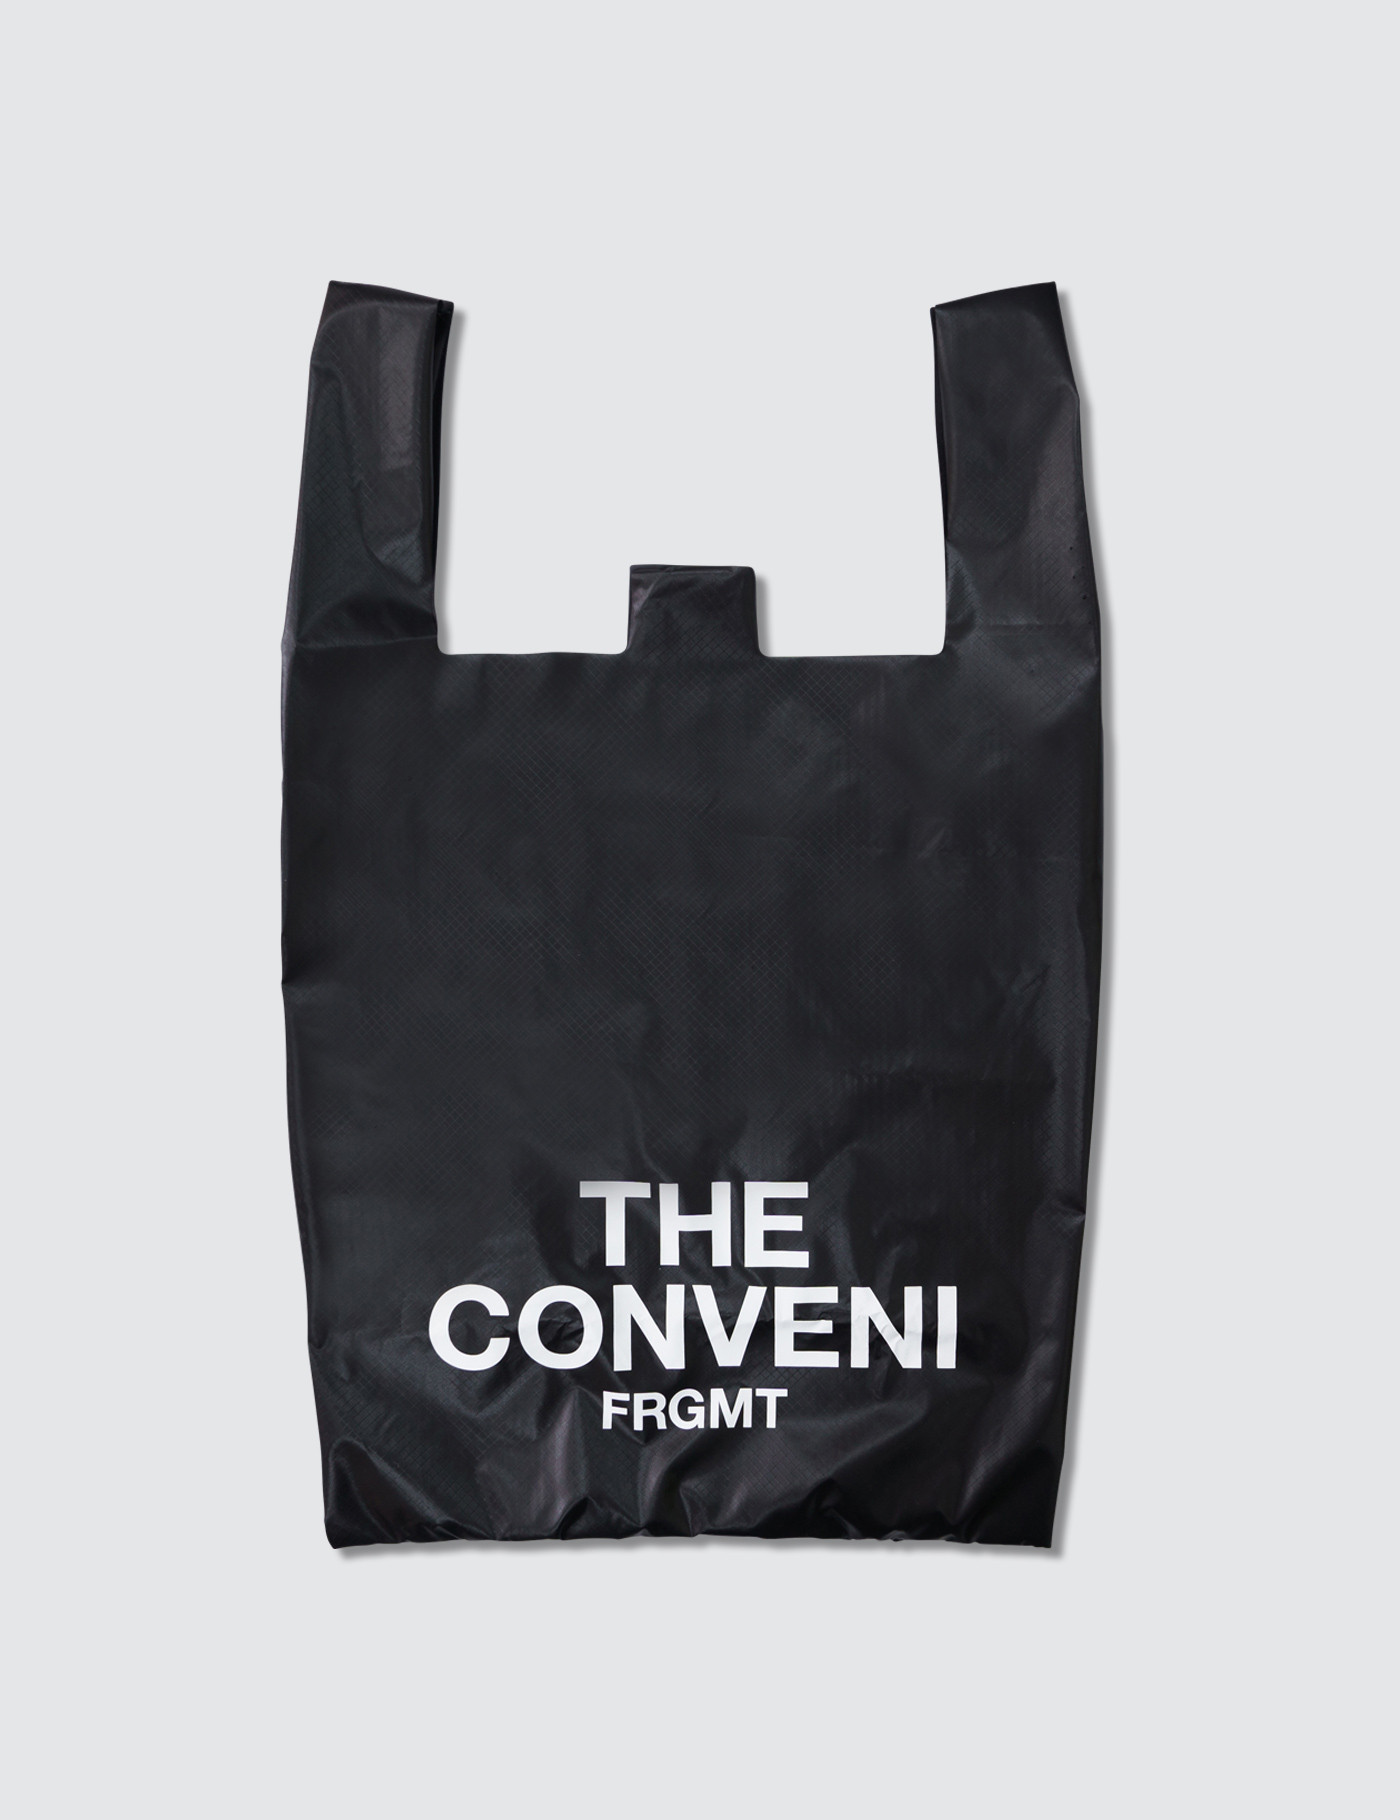 The Conveni FRGMT x  Shopping Bag